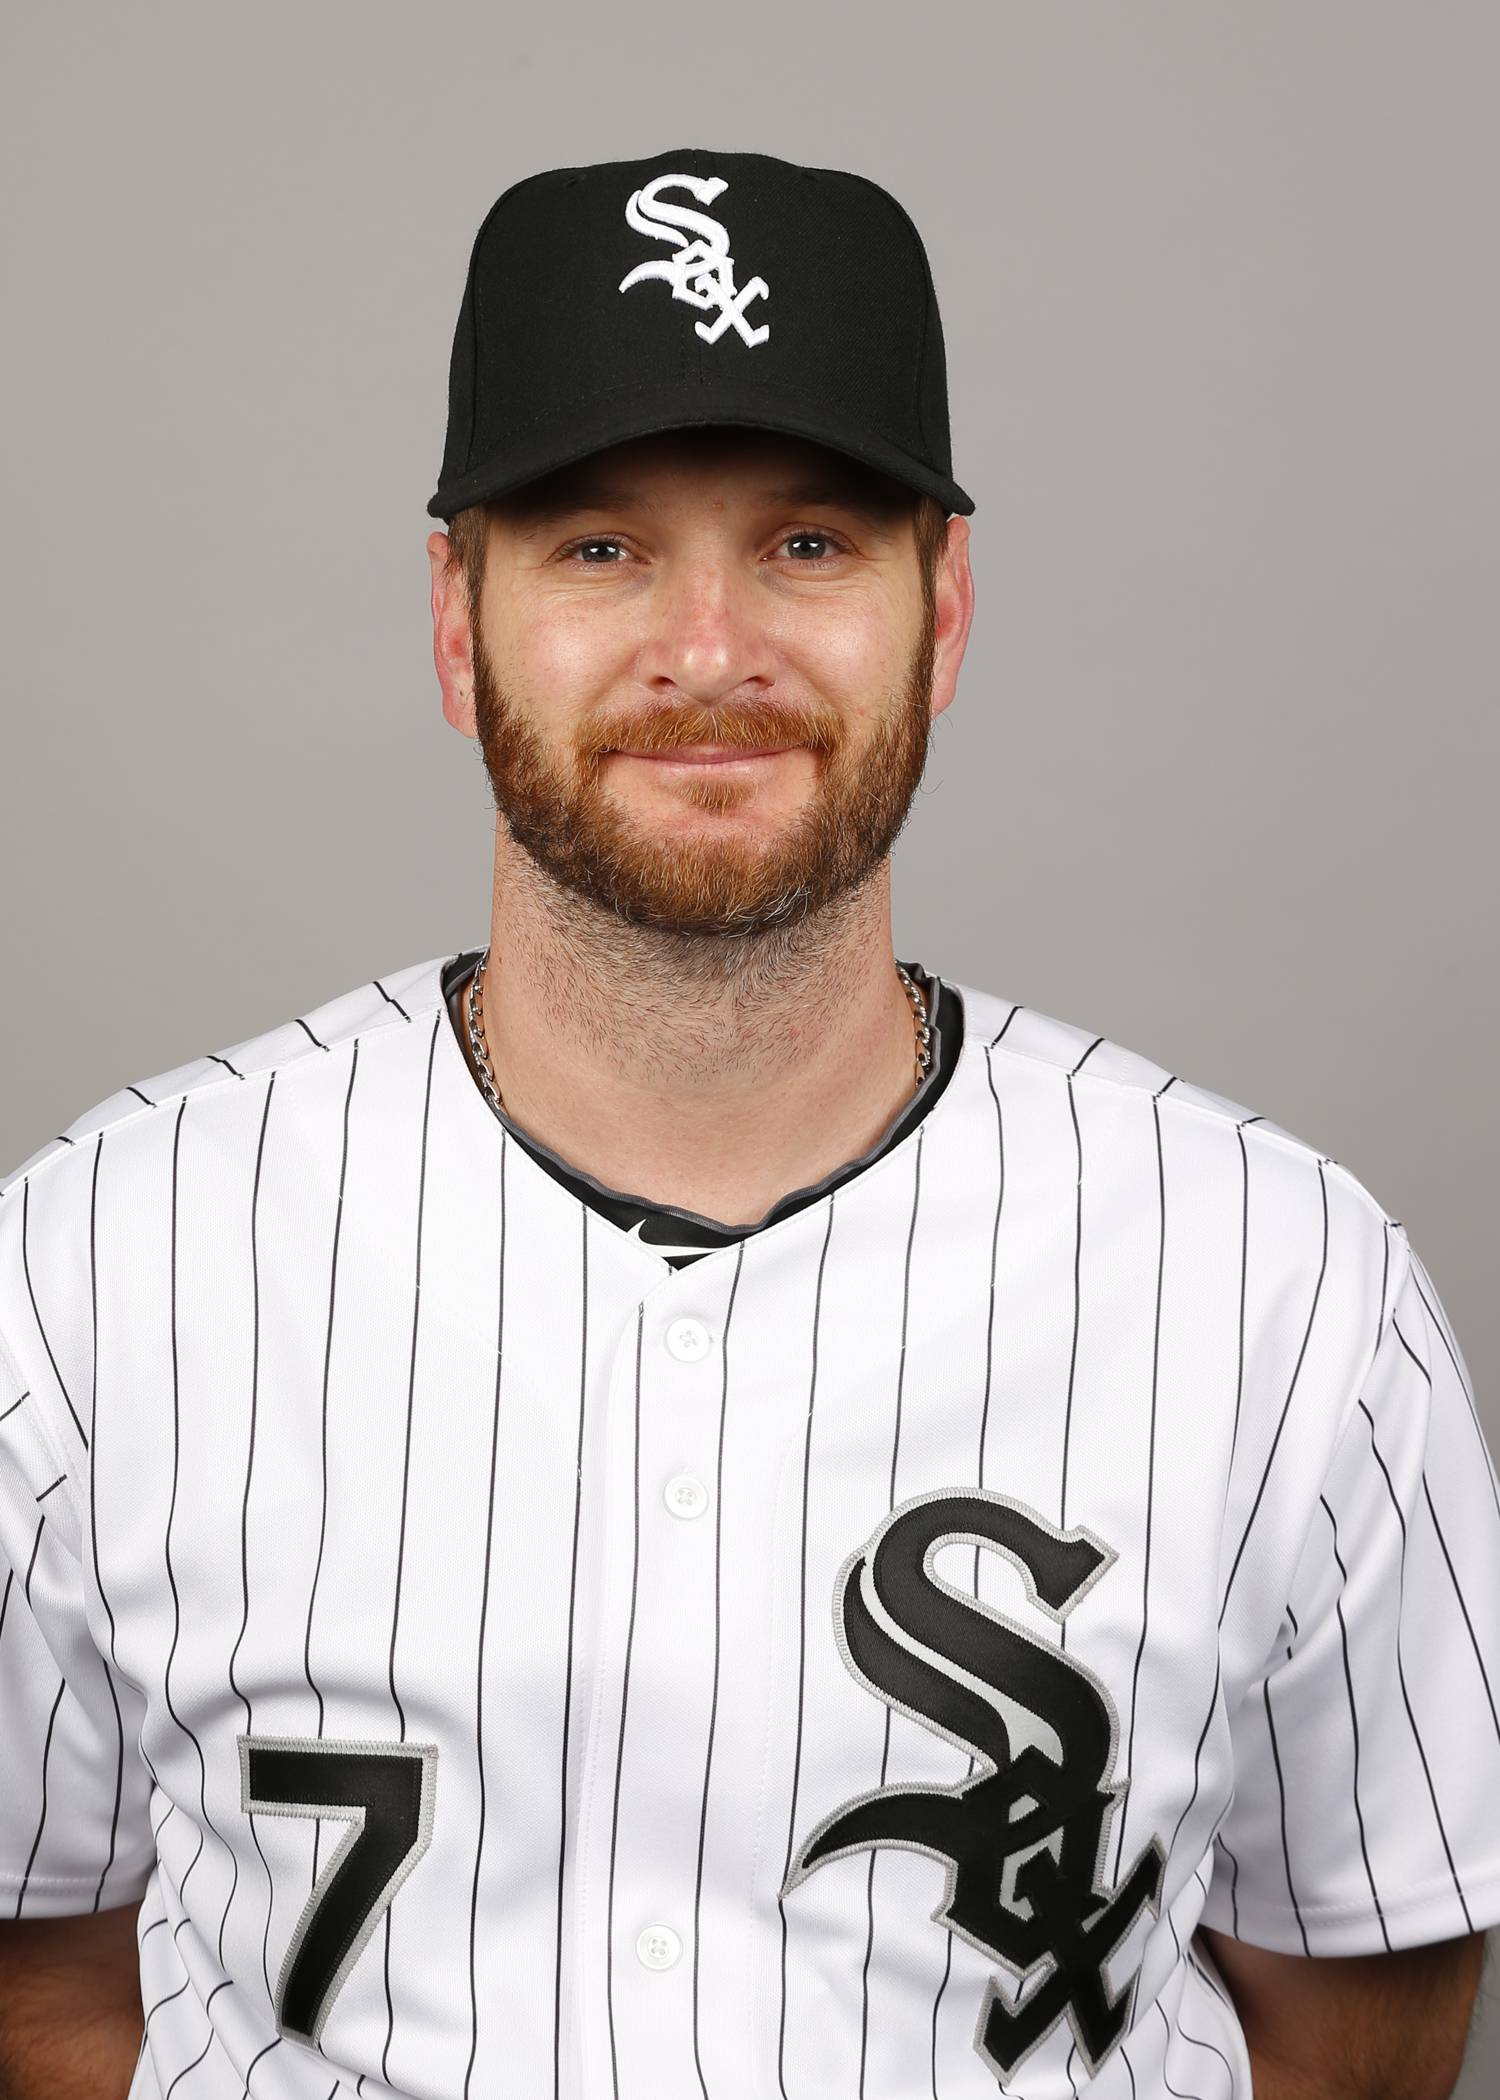 This is a 2014 photo of Jeff Keppinger of the Chicago White Sox baseball team. This image reflects the 2014 active roster as of Feb. 22, 2014 when this image was taken in Glendale, Ariz. (AP Photo/Paul Sancya)